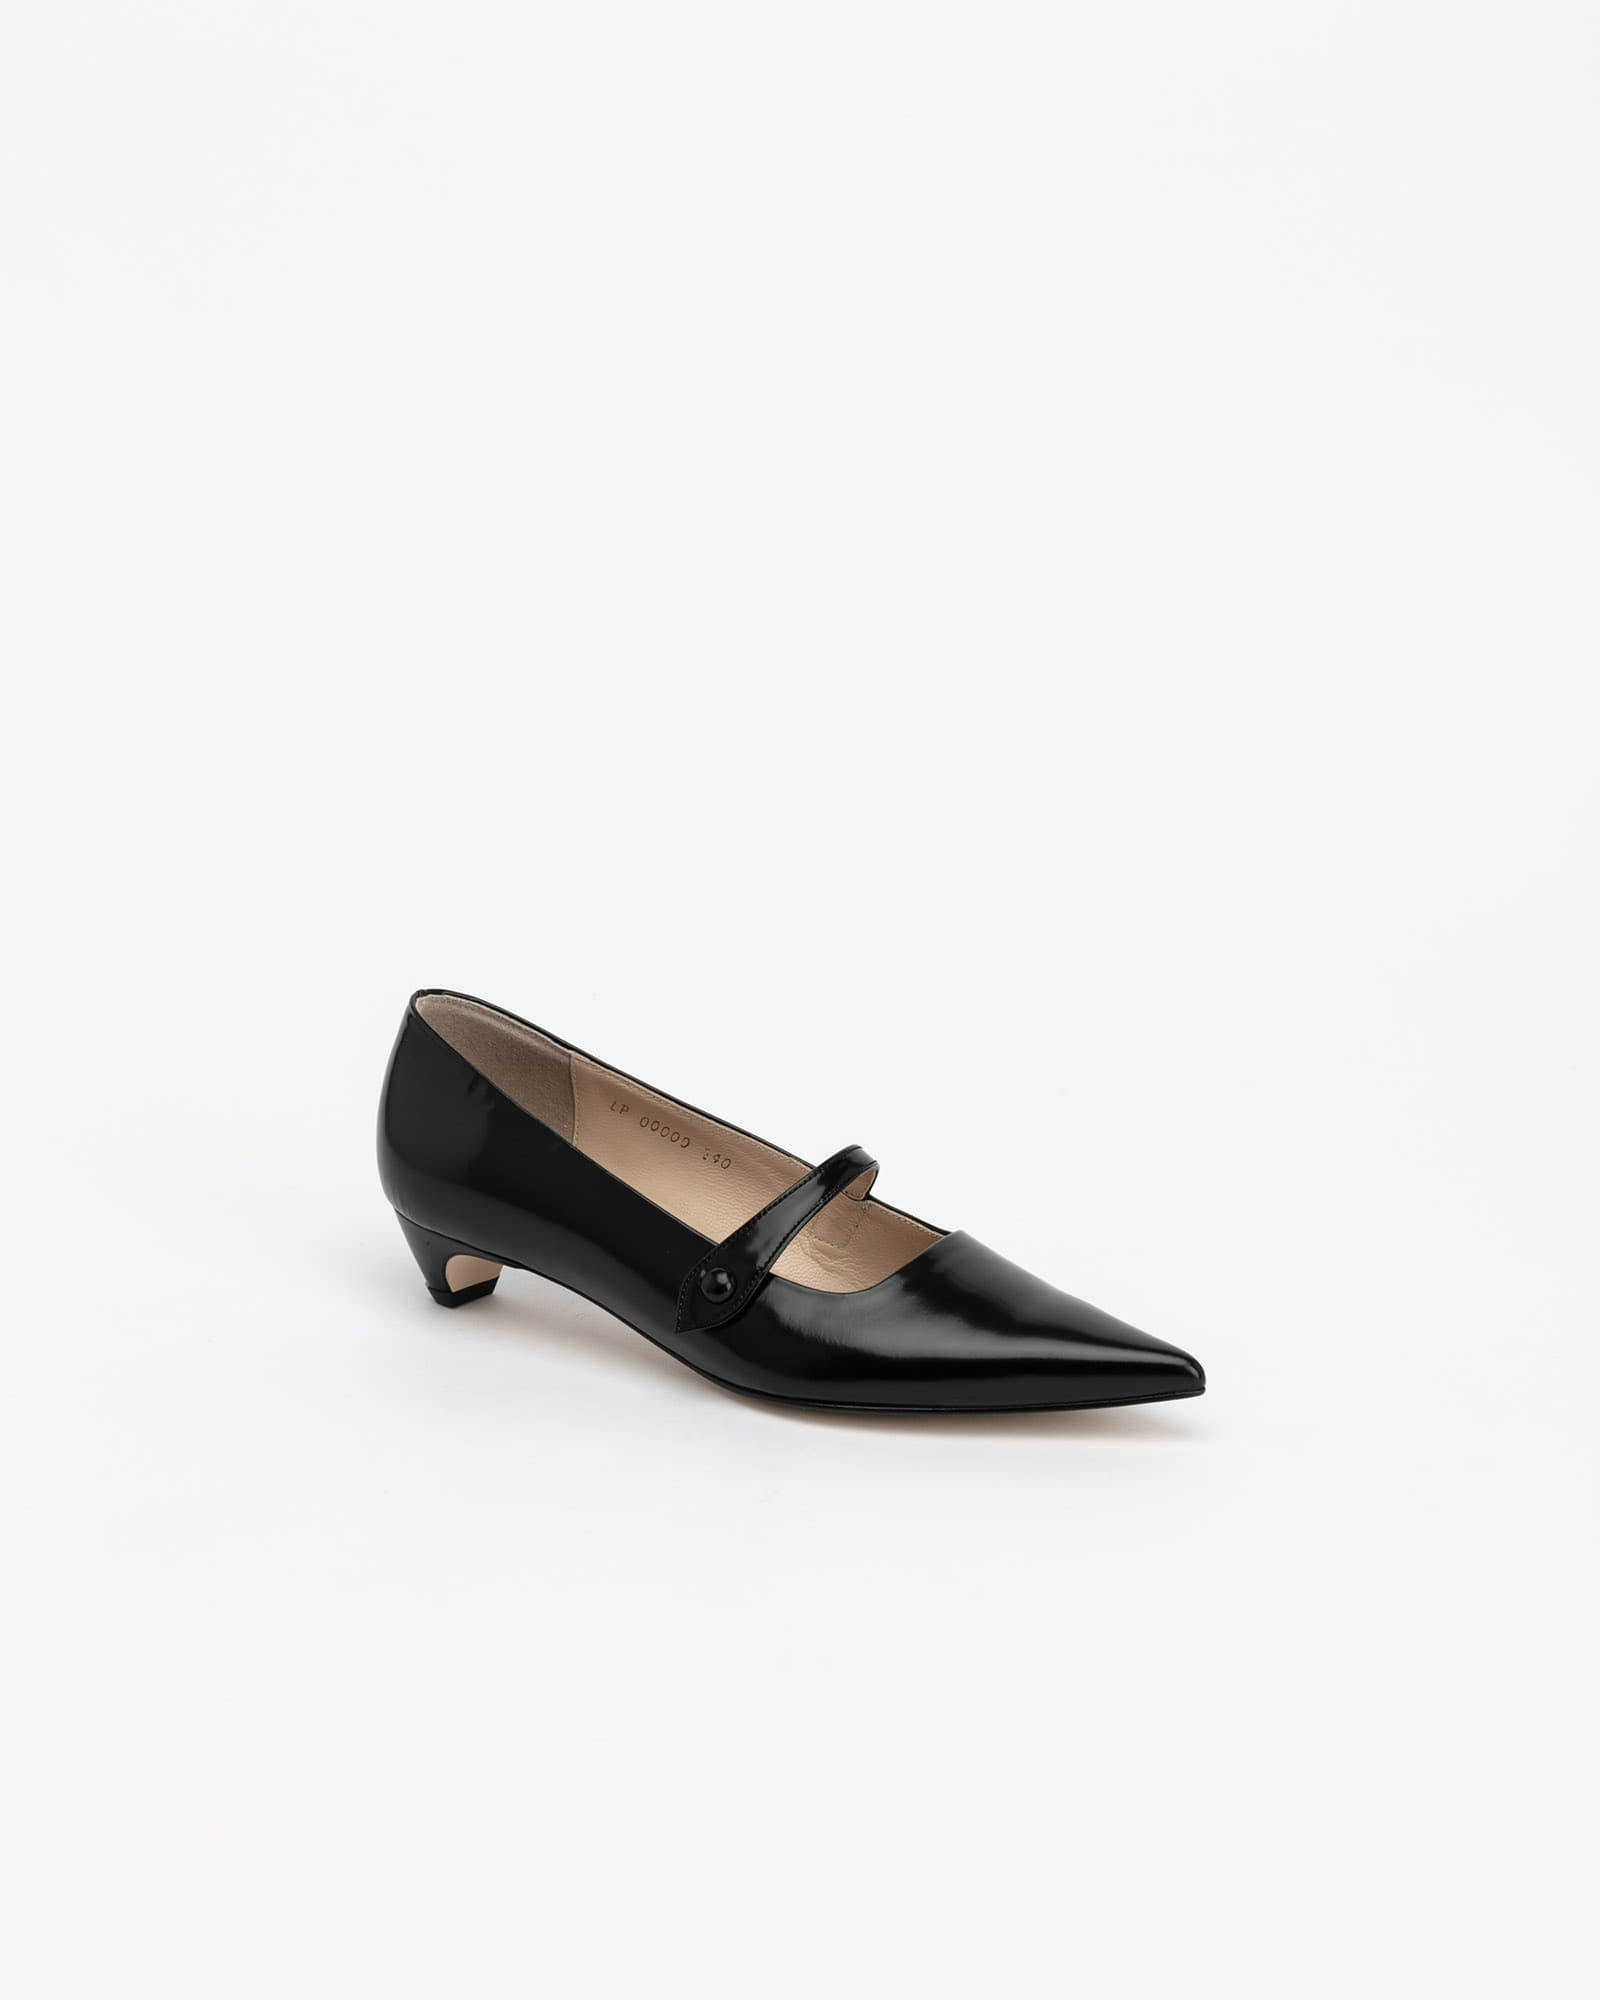 Bavaria Maryjane Shoes in Black Box